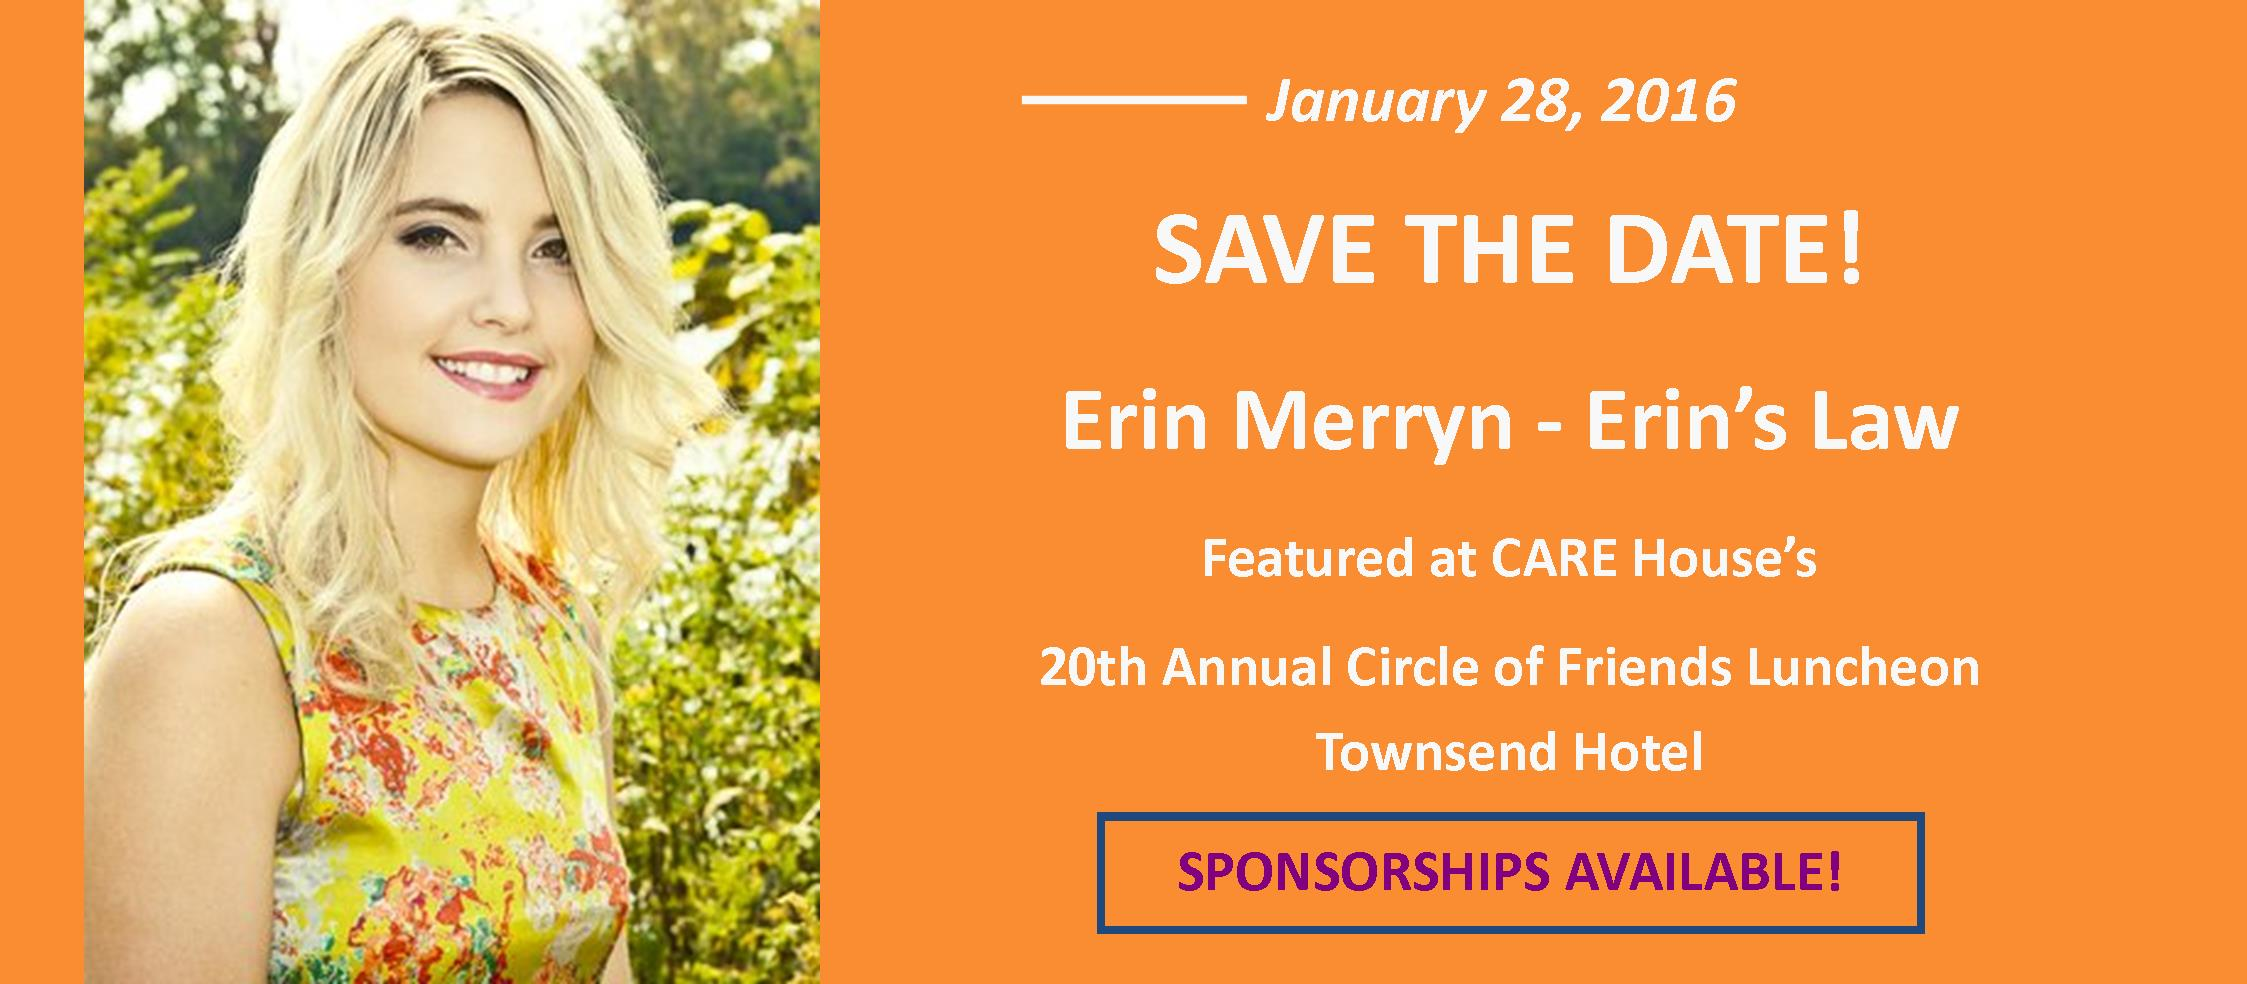 Erin Merryn Save the Date